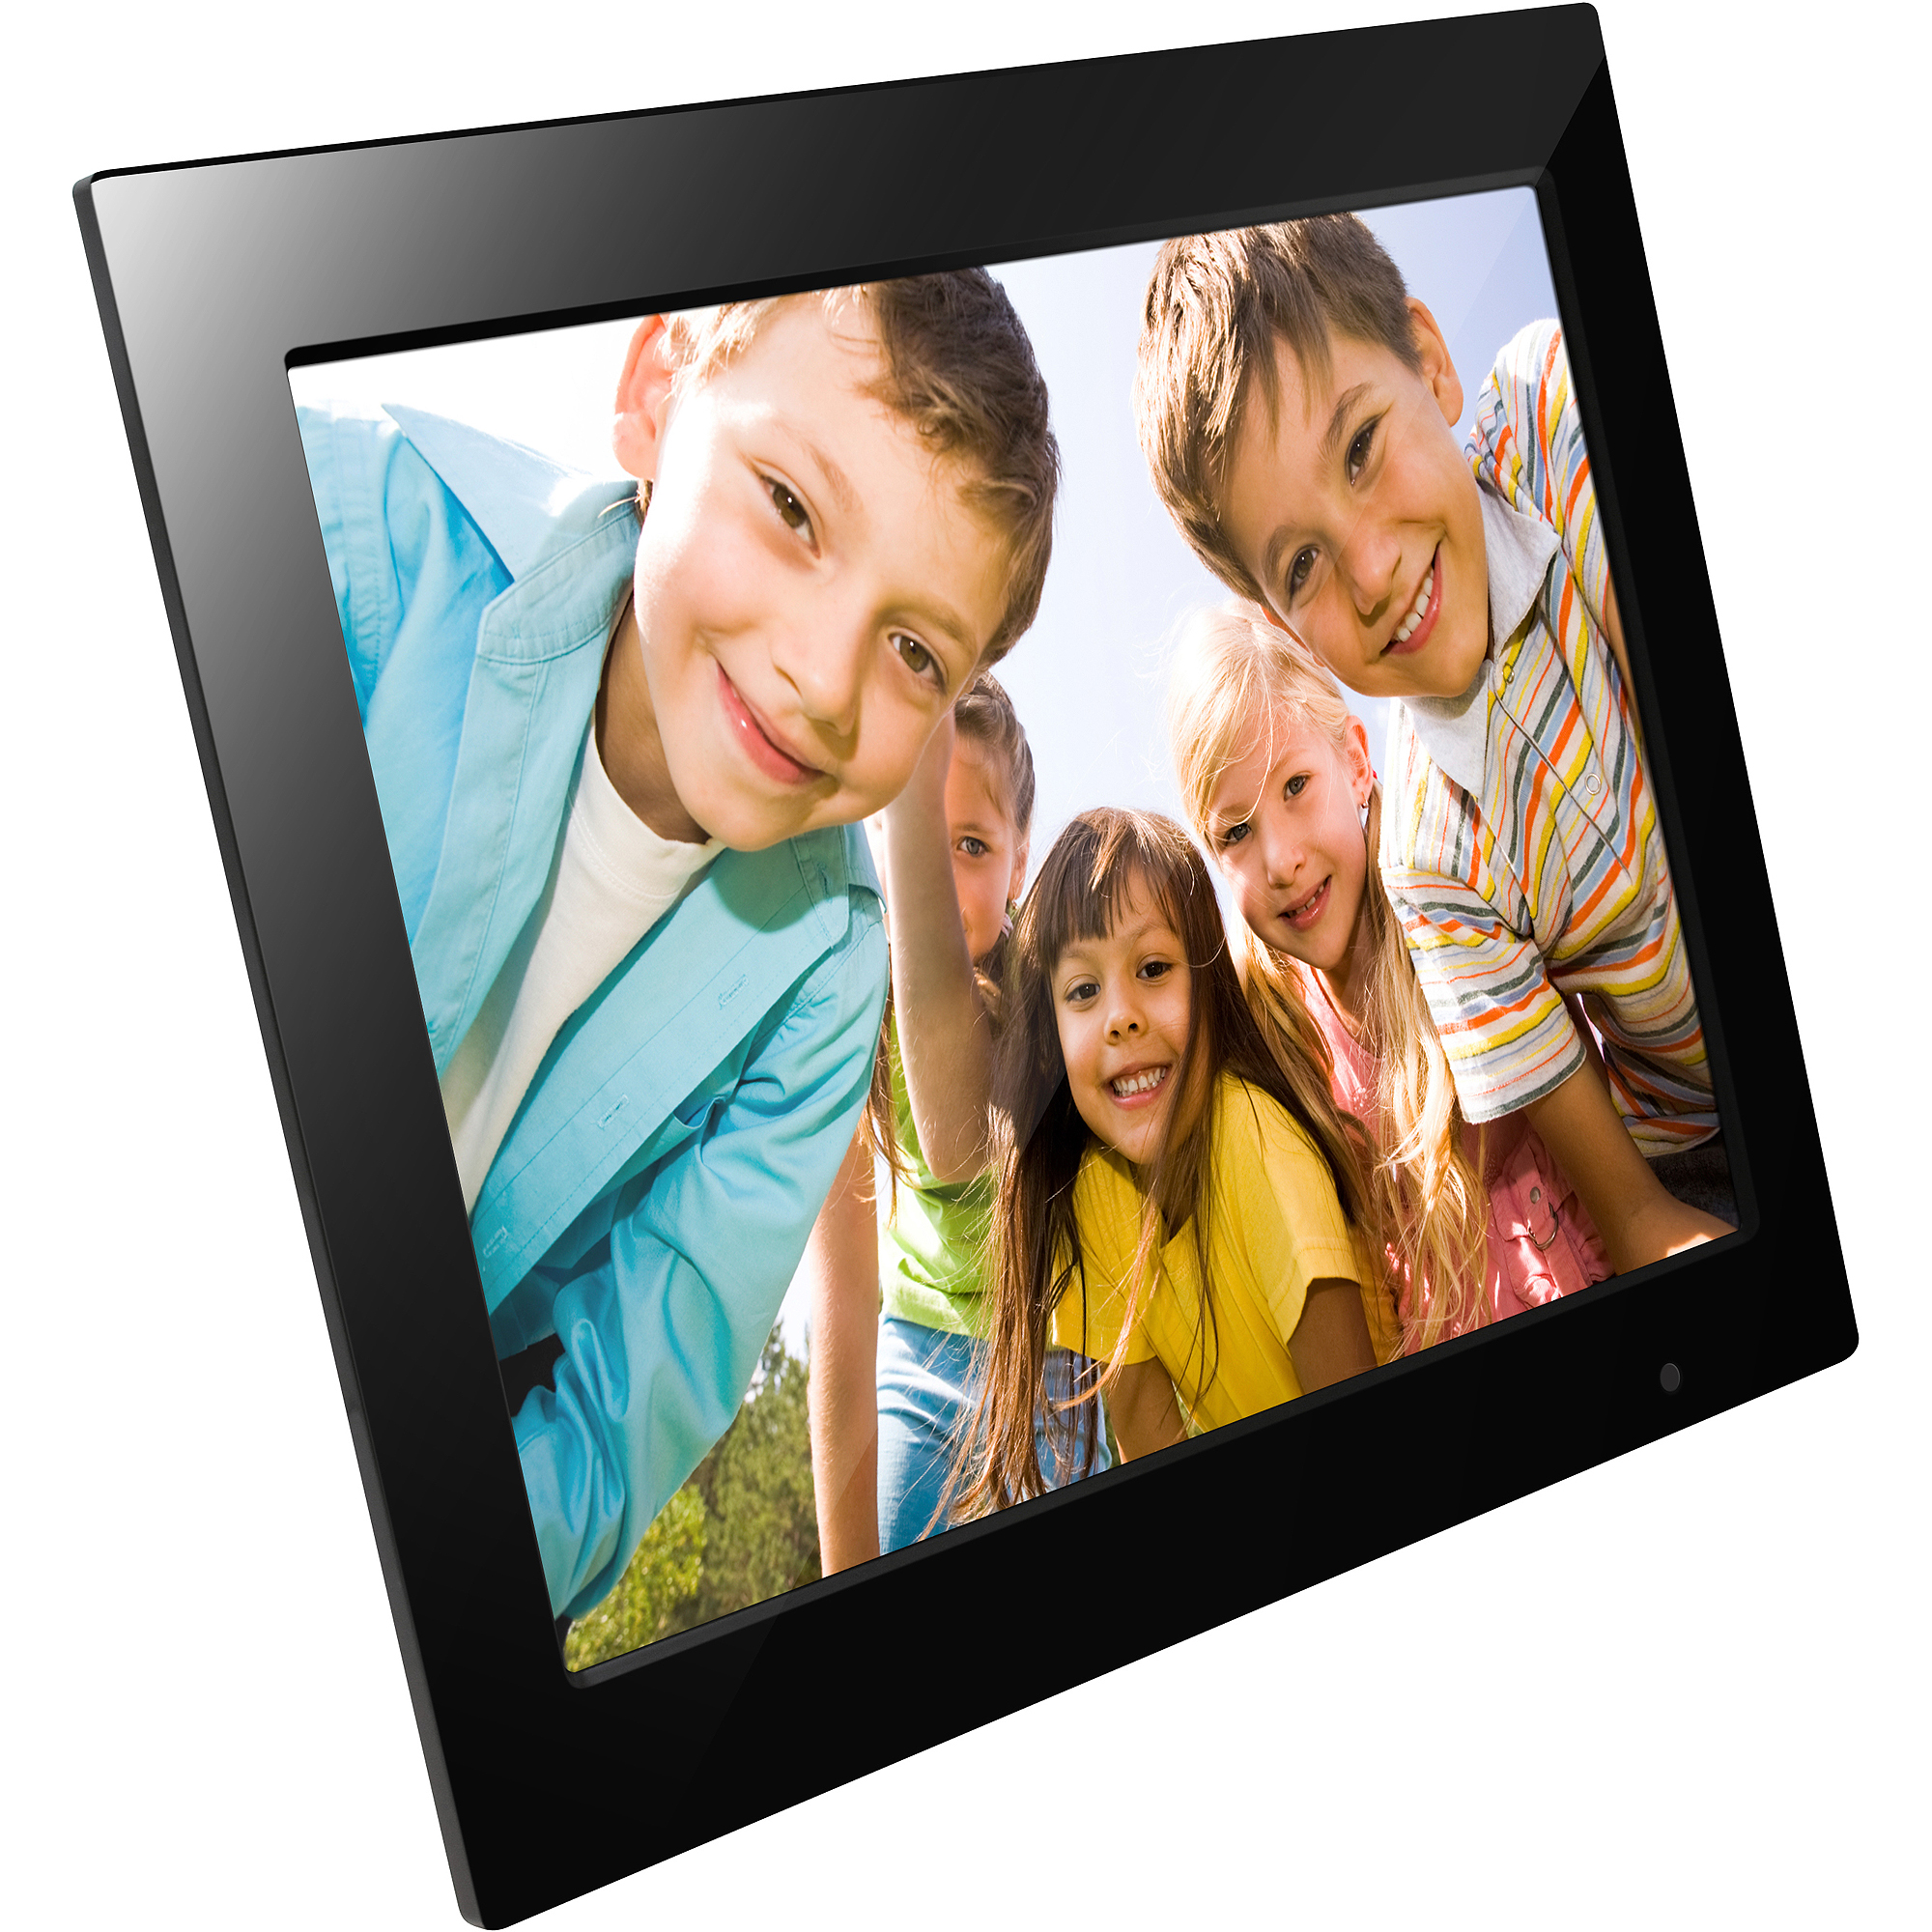 "FileMate Joy Series 15"" Digital Photo Frame, Black, Refurbished"